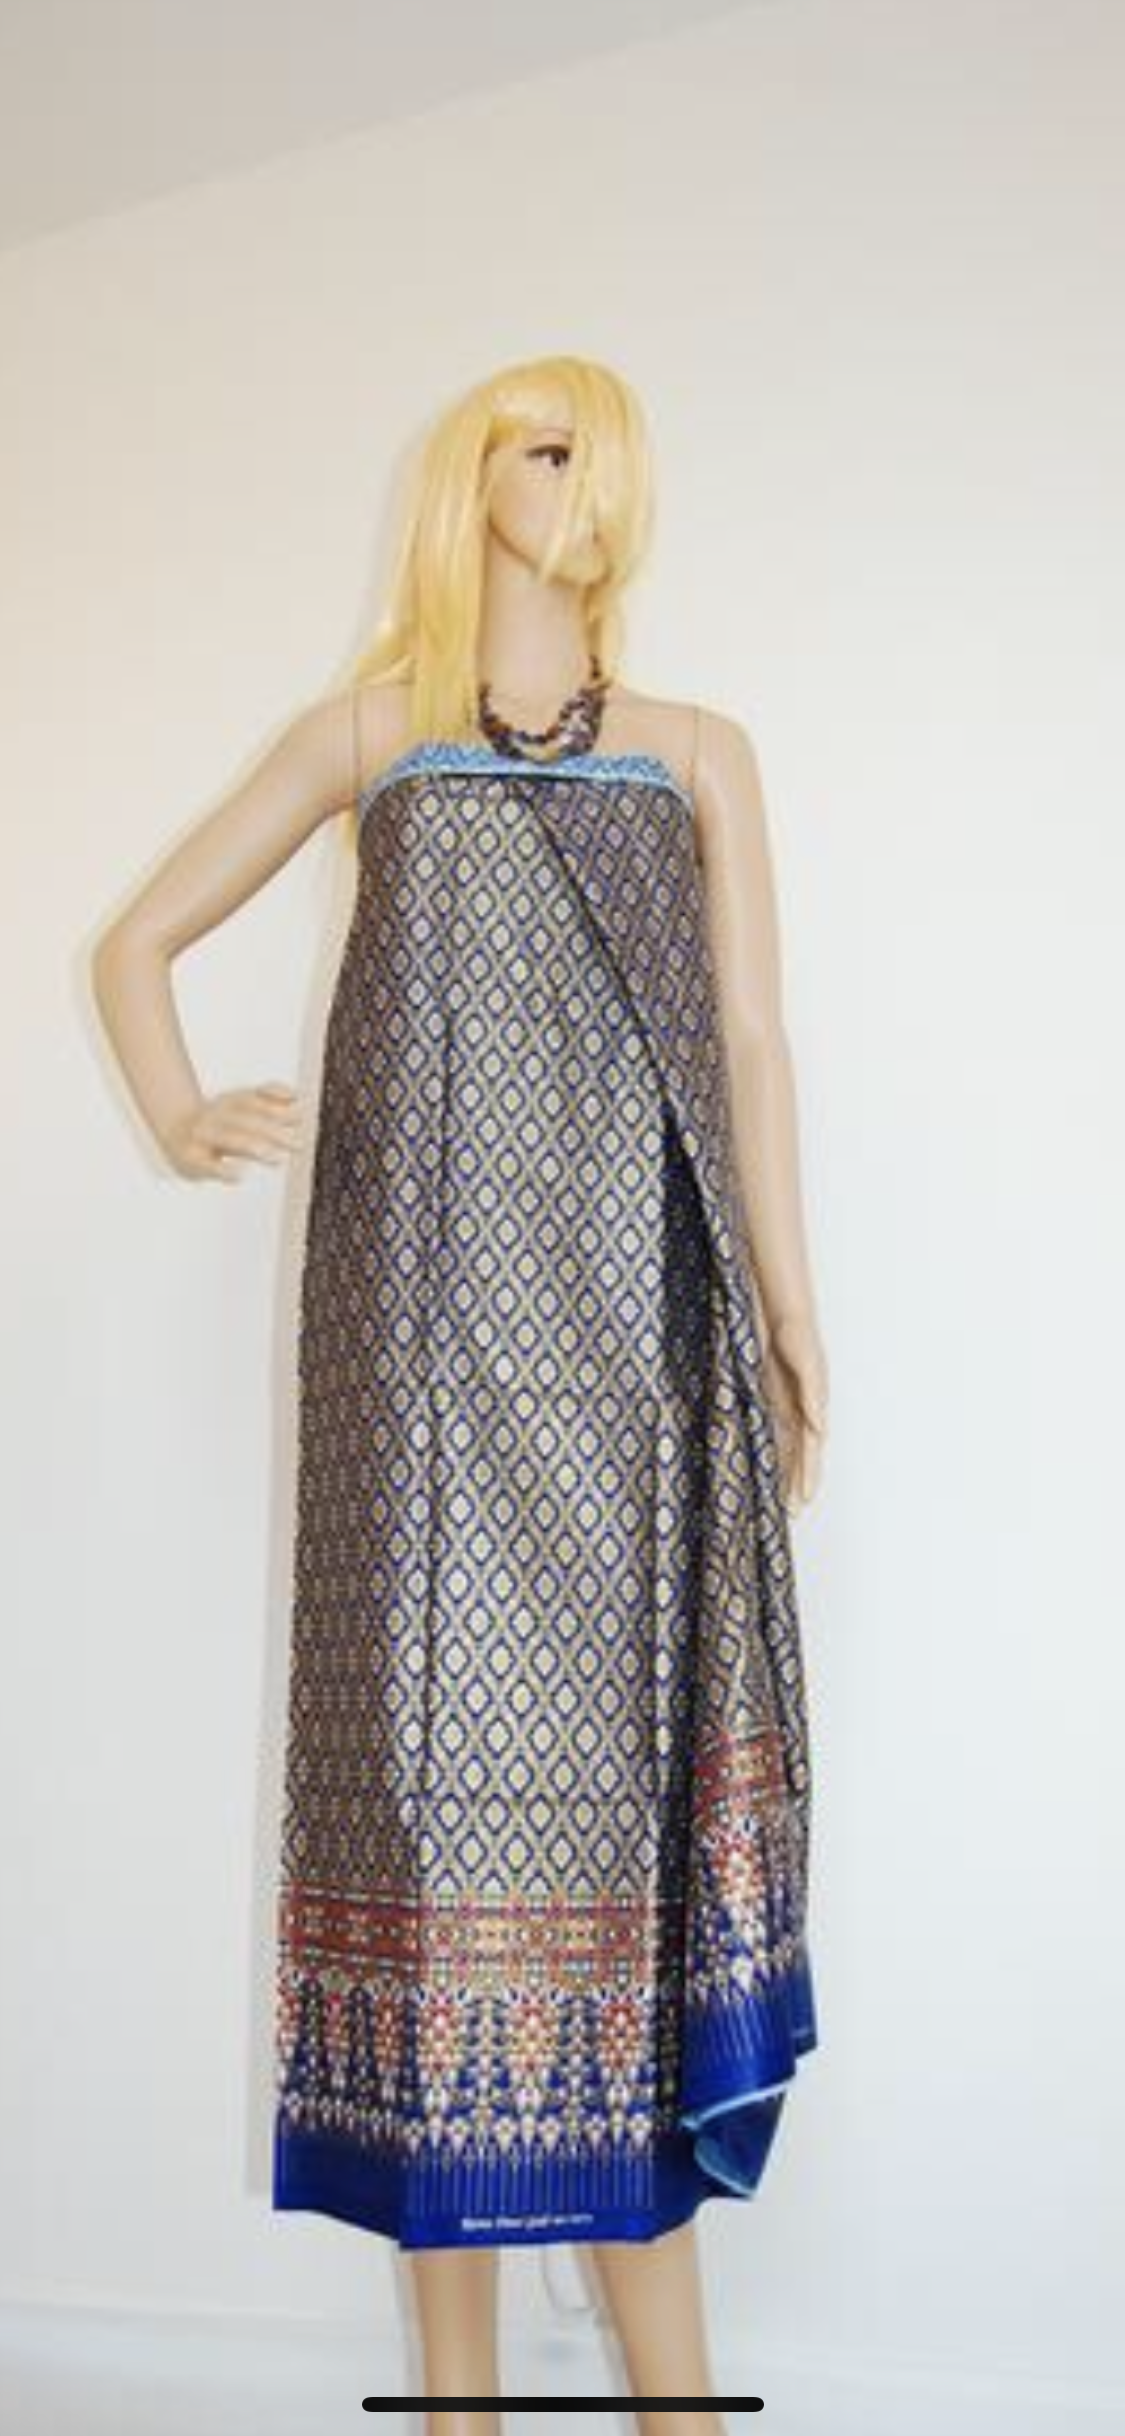 "Malong"" as a strapless long dress. 